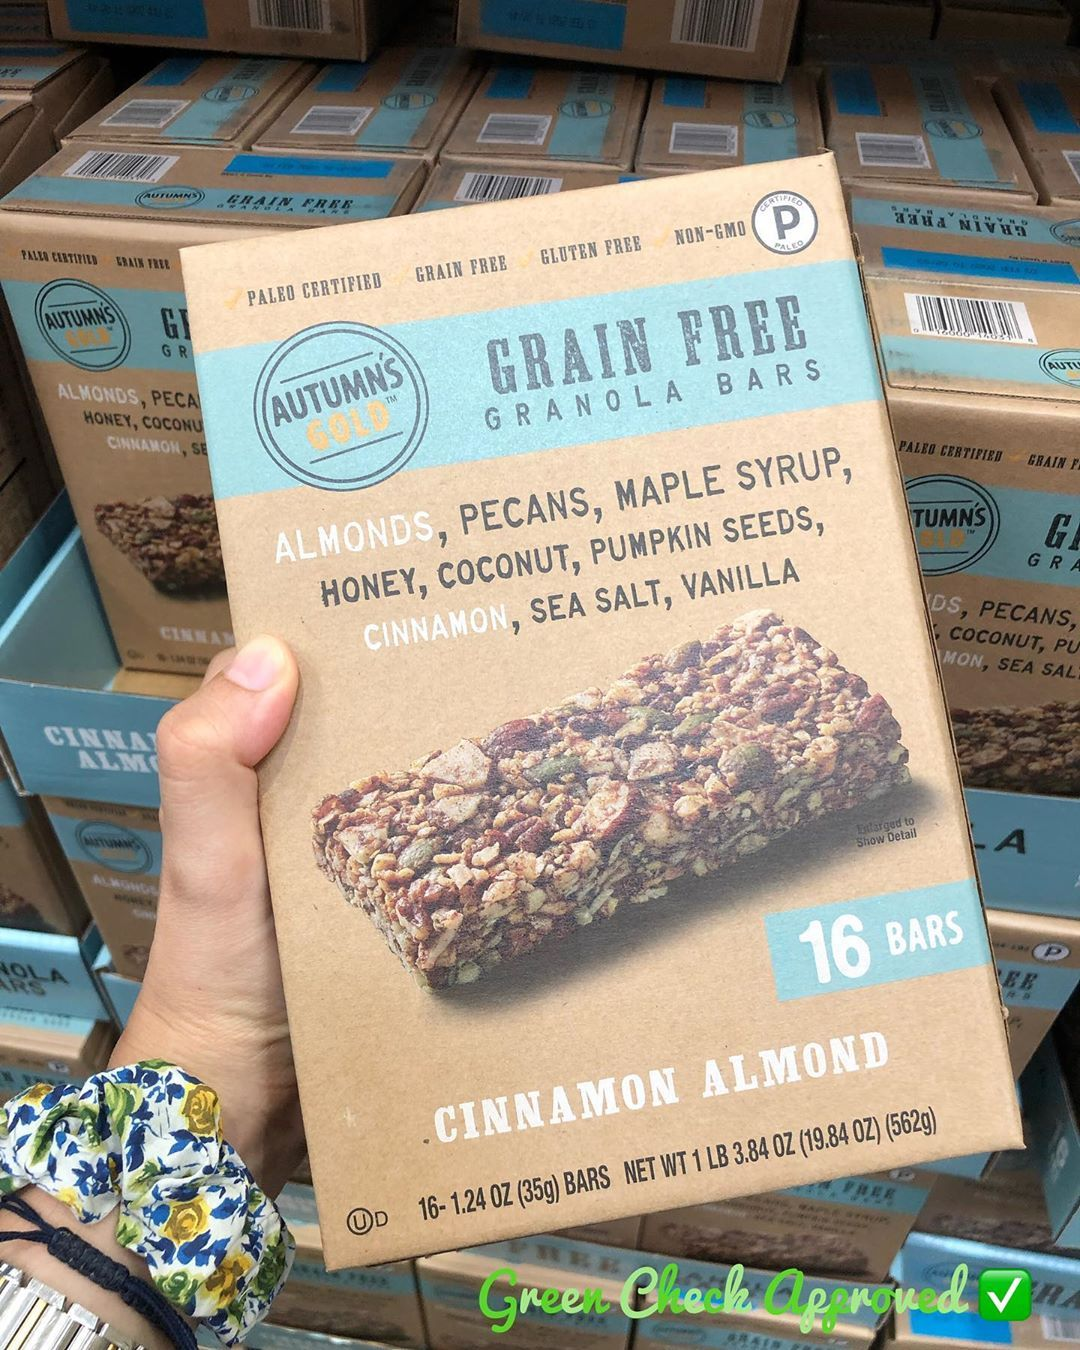 Autumns Gold Grain Free Granola Bar Is Blend Of Simple High Quality Ingredients Like Nuts Seeds And A Tou Vegan Recipes Healthy Grain Free Granola Bars Paleo